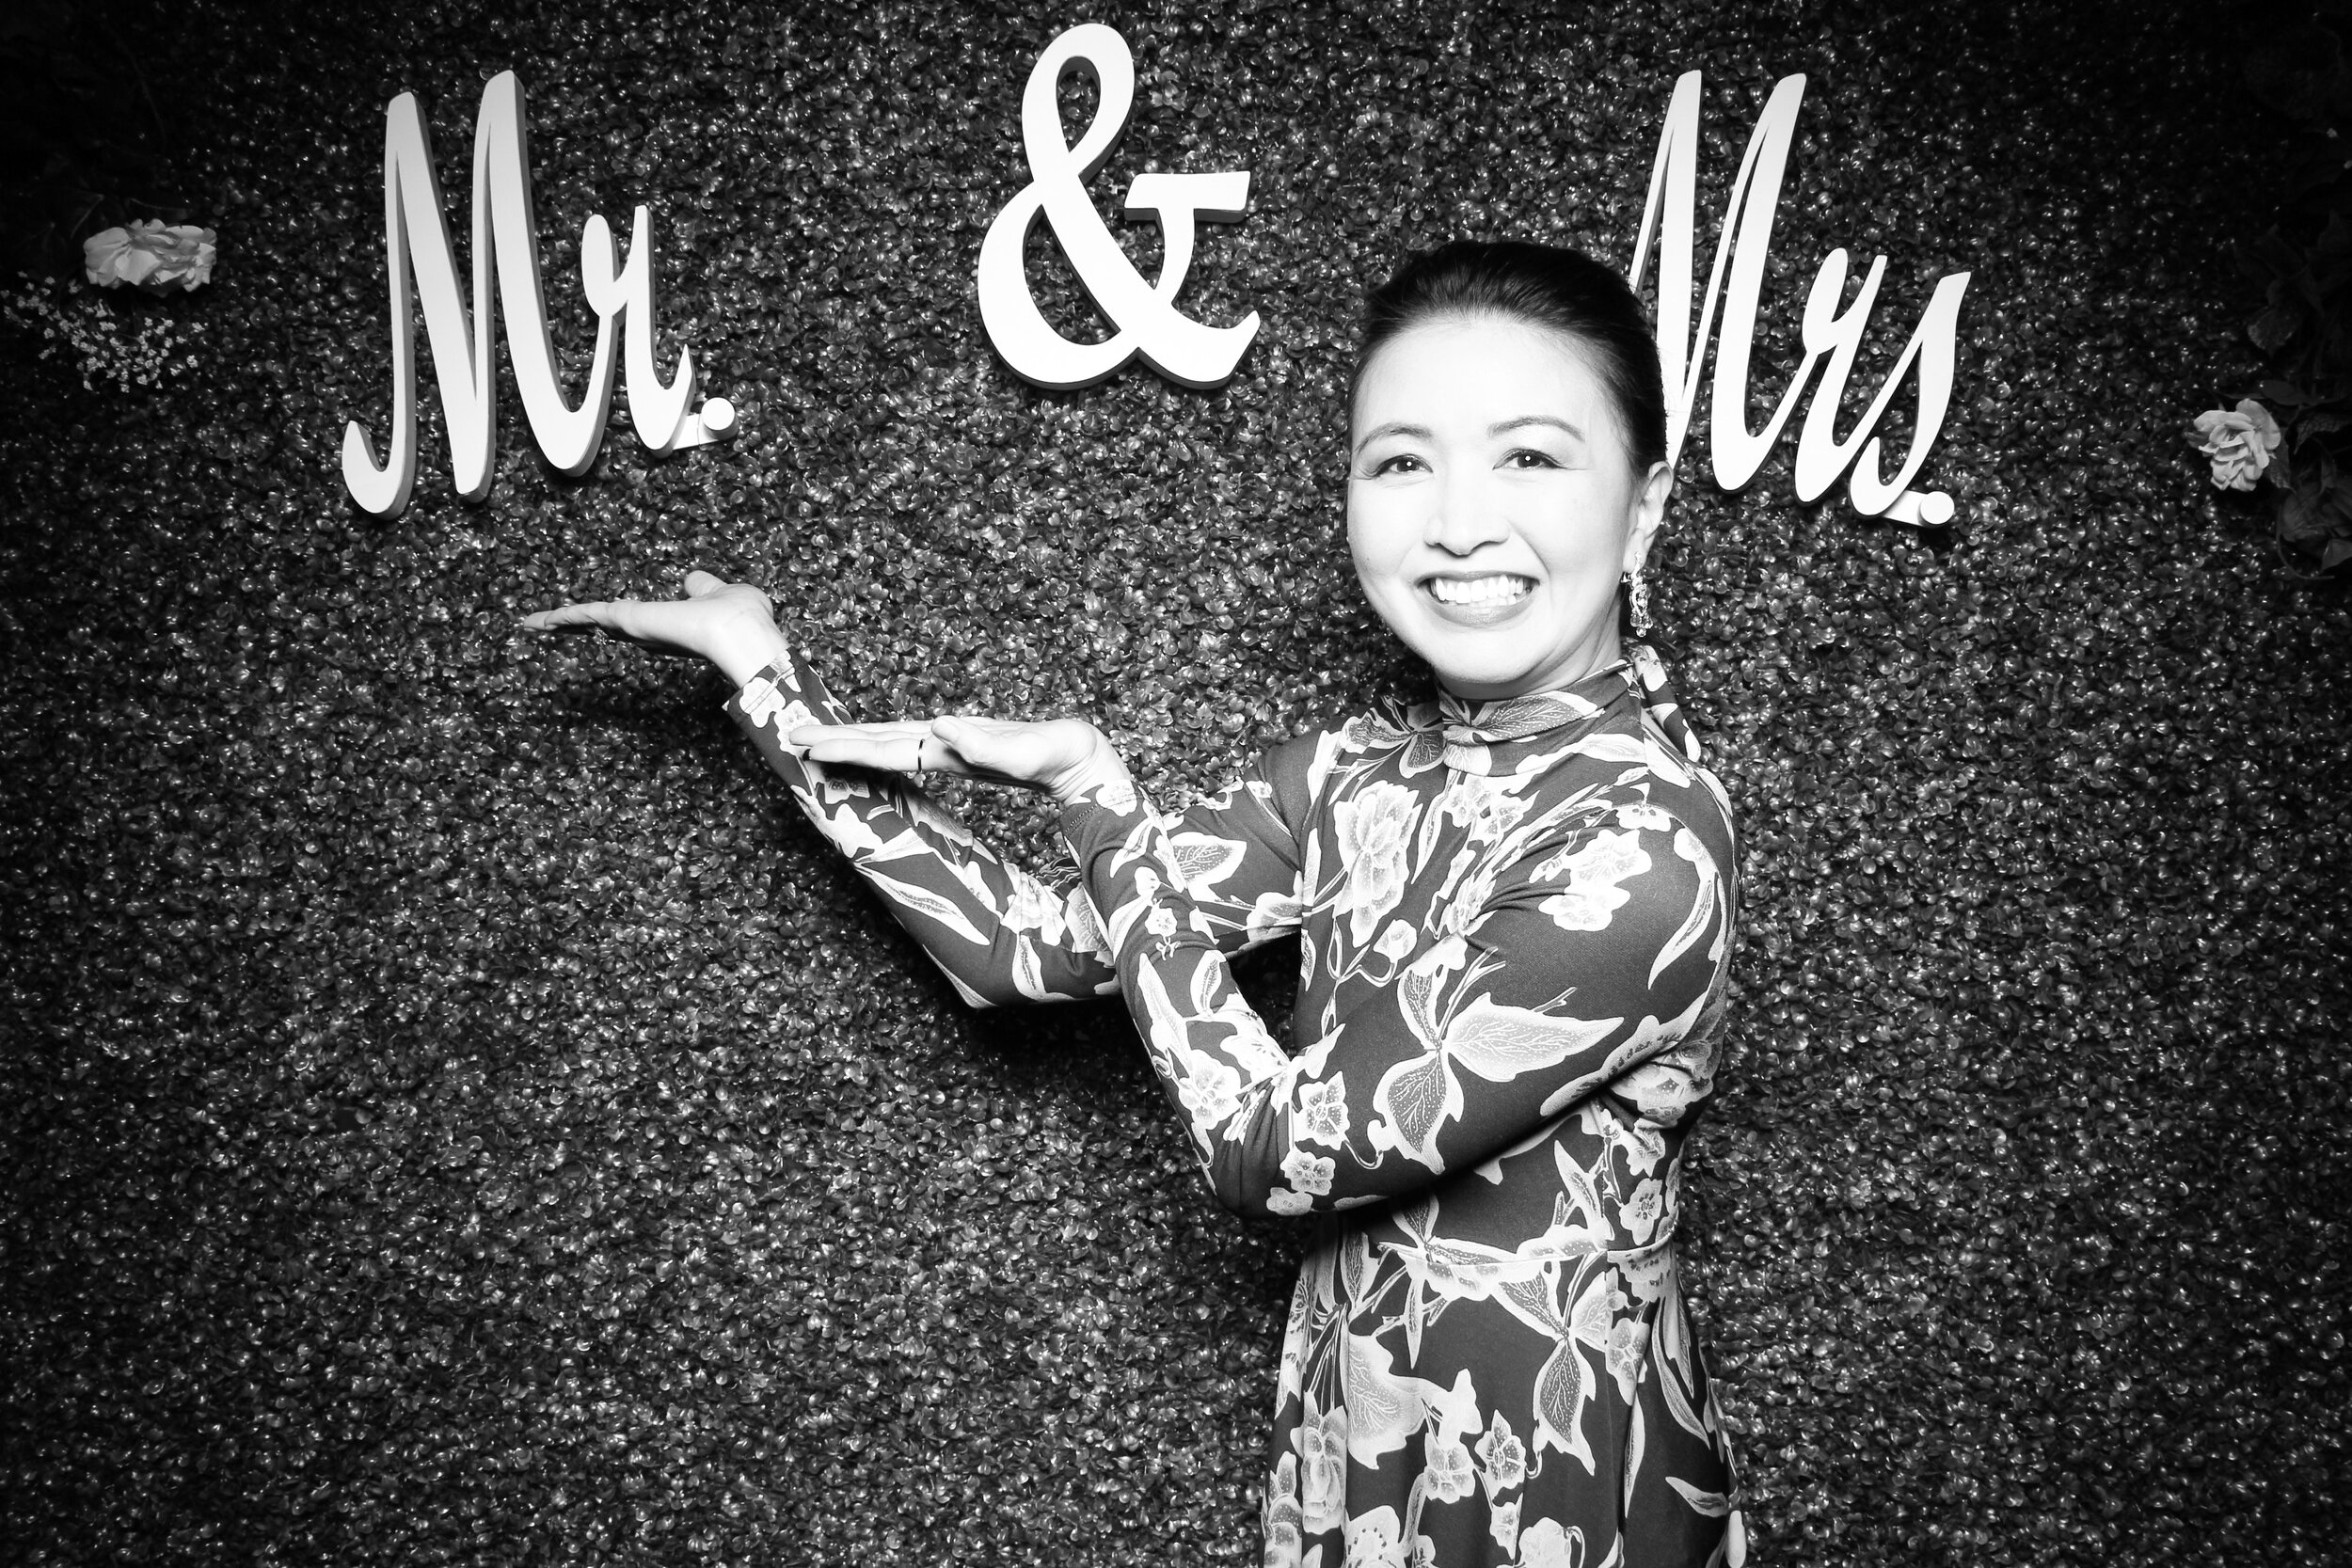 Green_Hedge_Ivy_Wall_Backdrop_Photo_Booth_Rental_Chicago_11.jpg